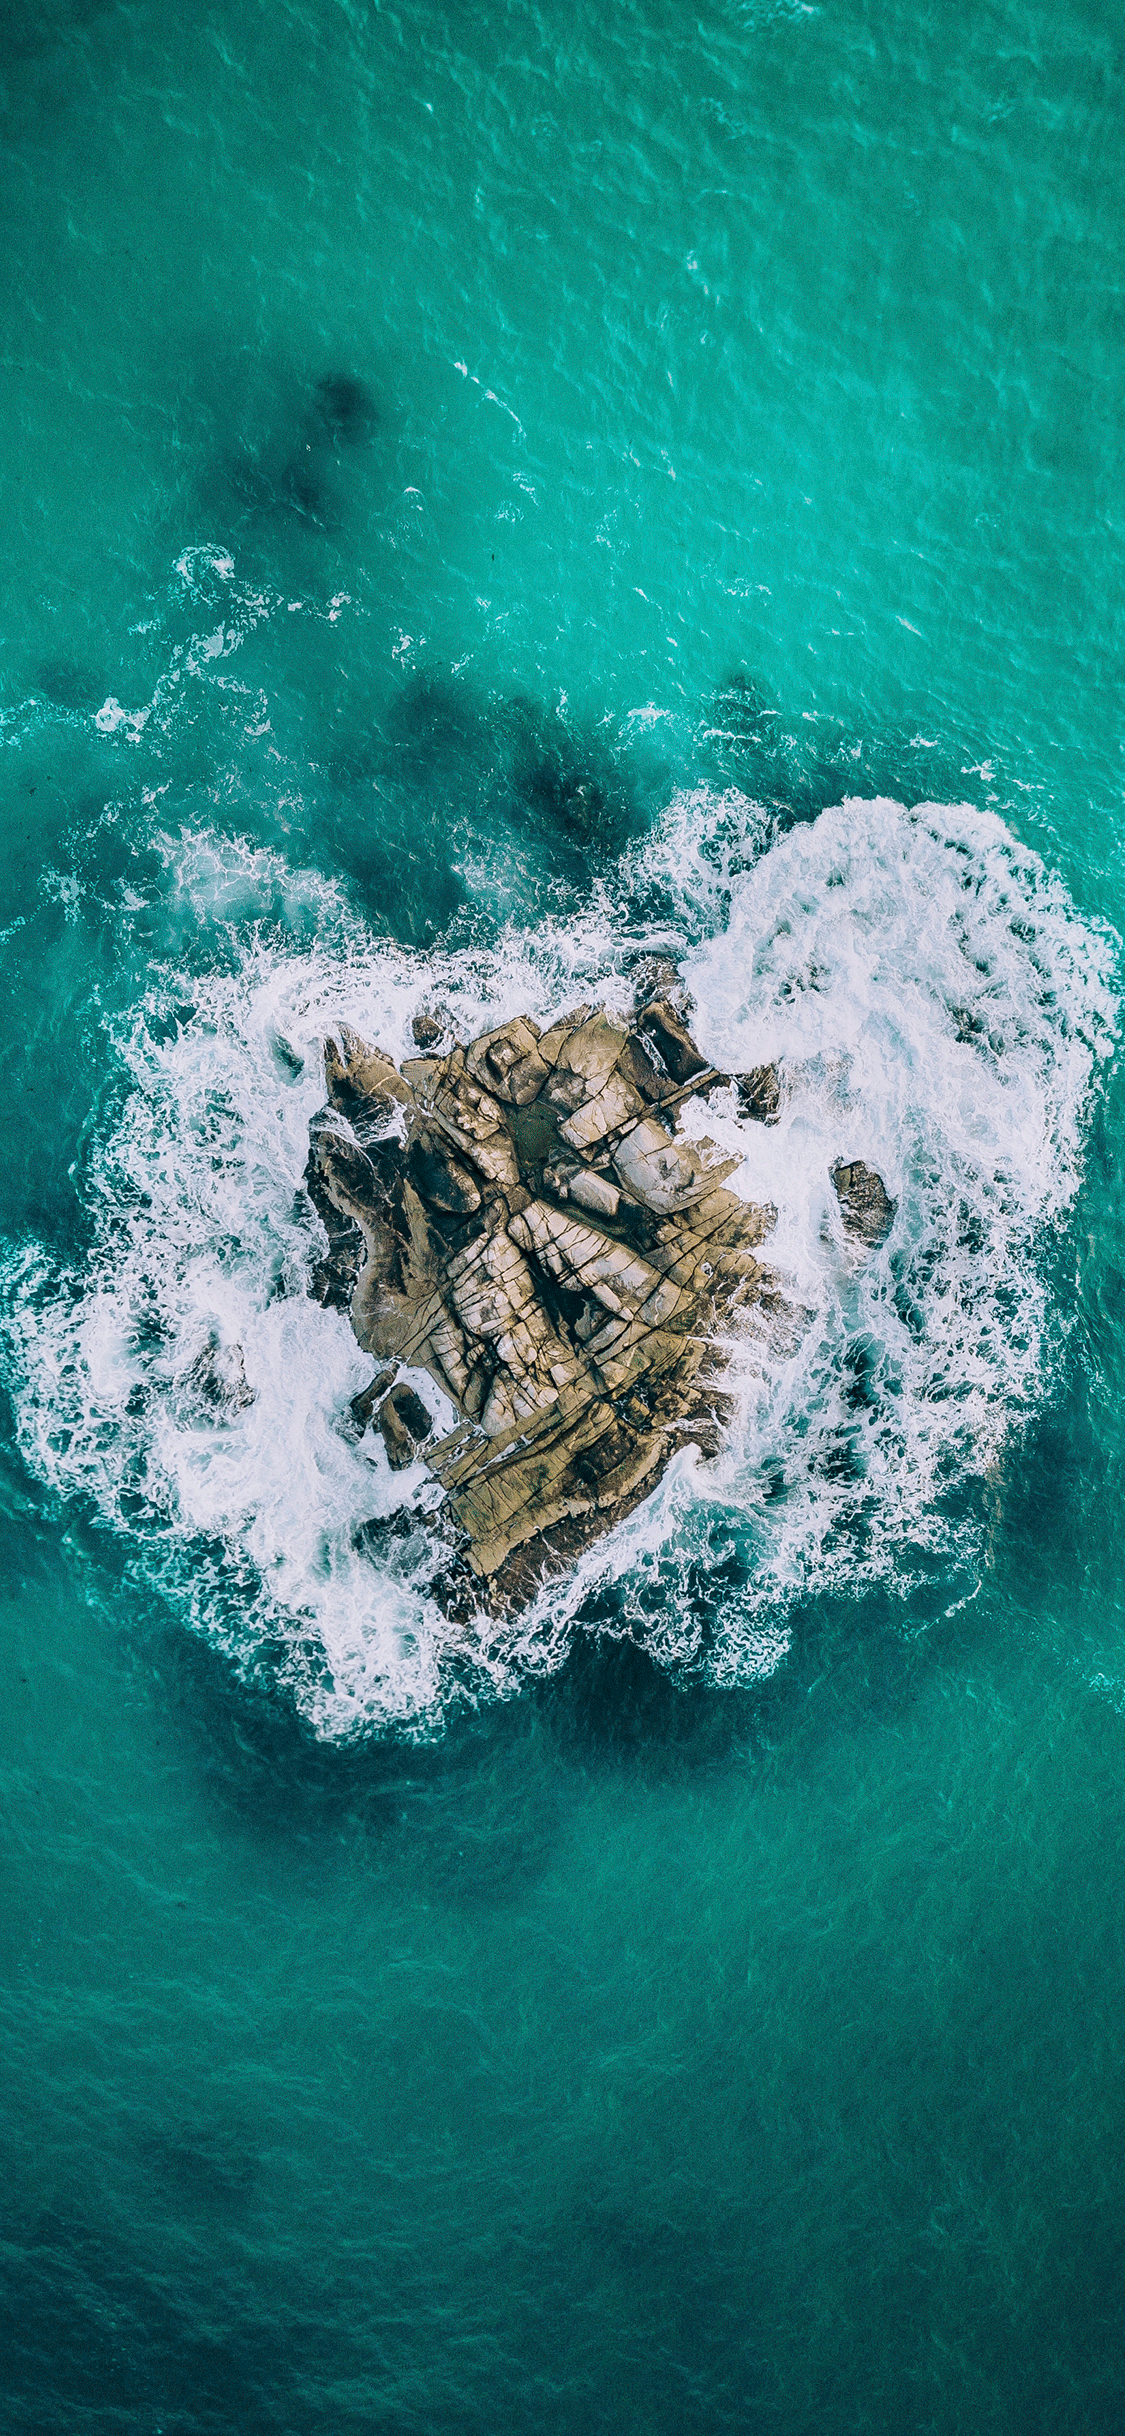 iPhone wallpaper aerial photos island heart Fonds d'écran iPhone du 18/09/2018